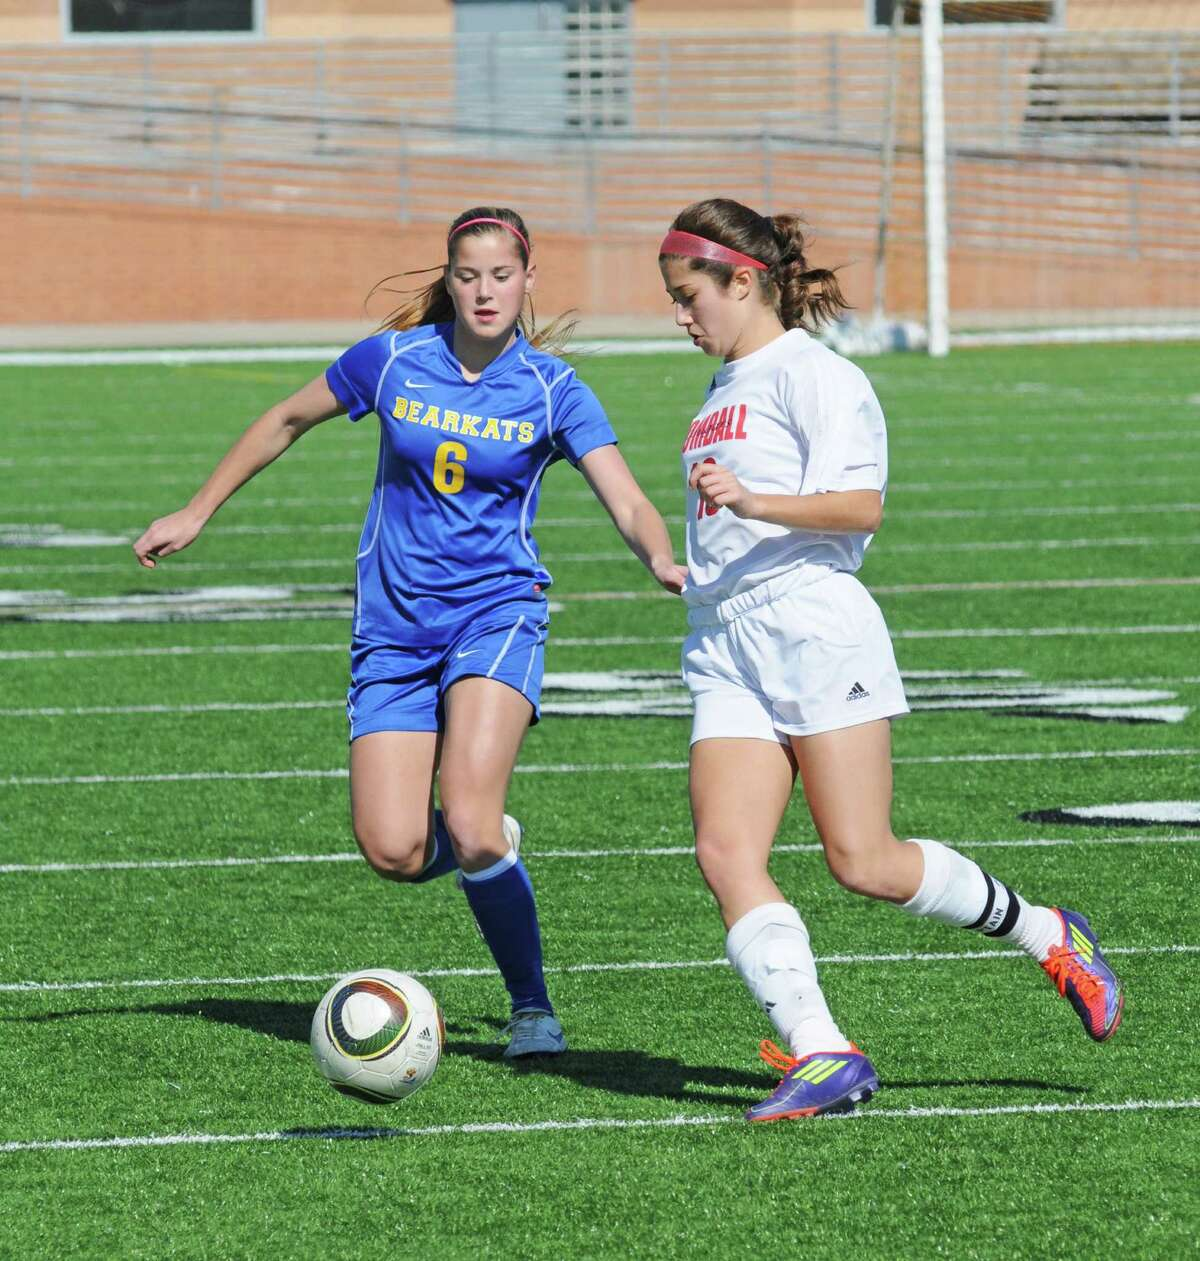 Klein 2013 sophomore Katie Neary (6) was a key contributor on the 2012 Lady Bearkats playoff team. Klein girls soccer fell to Tomball 2-1 during the Katy I-10 Shootout on 1-18-13 at Rhodes Stadium, and it was the Lady Bearkats' only loss during a 4-1-2 start to the 2013 season.